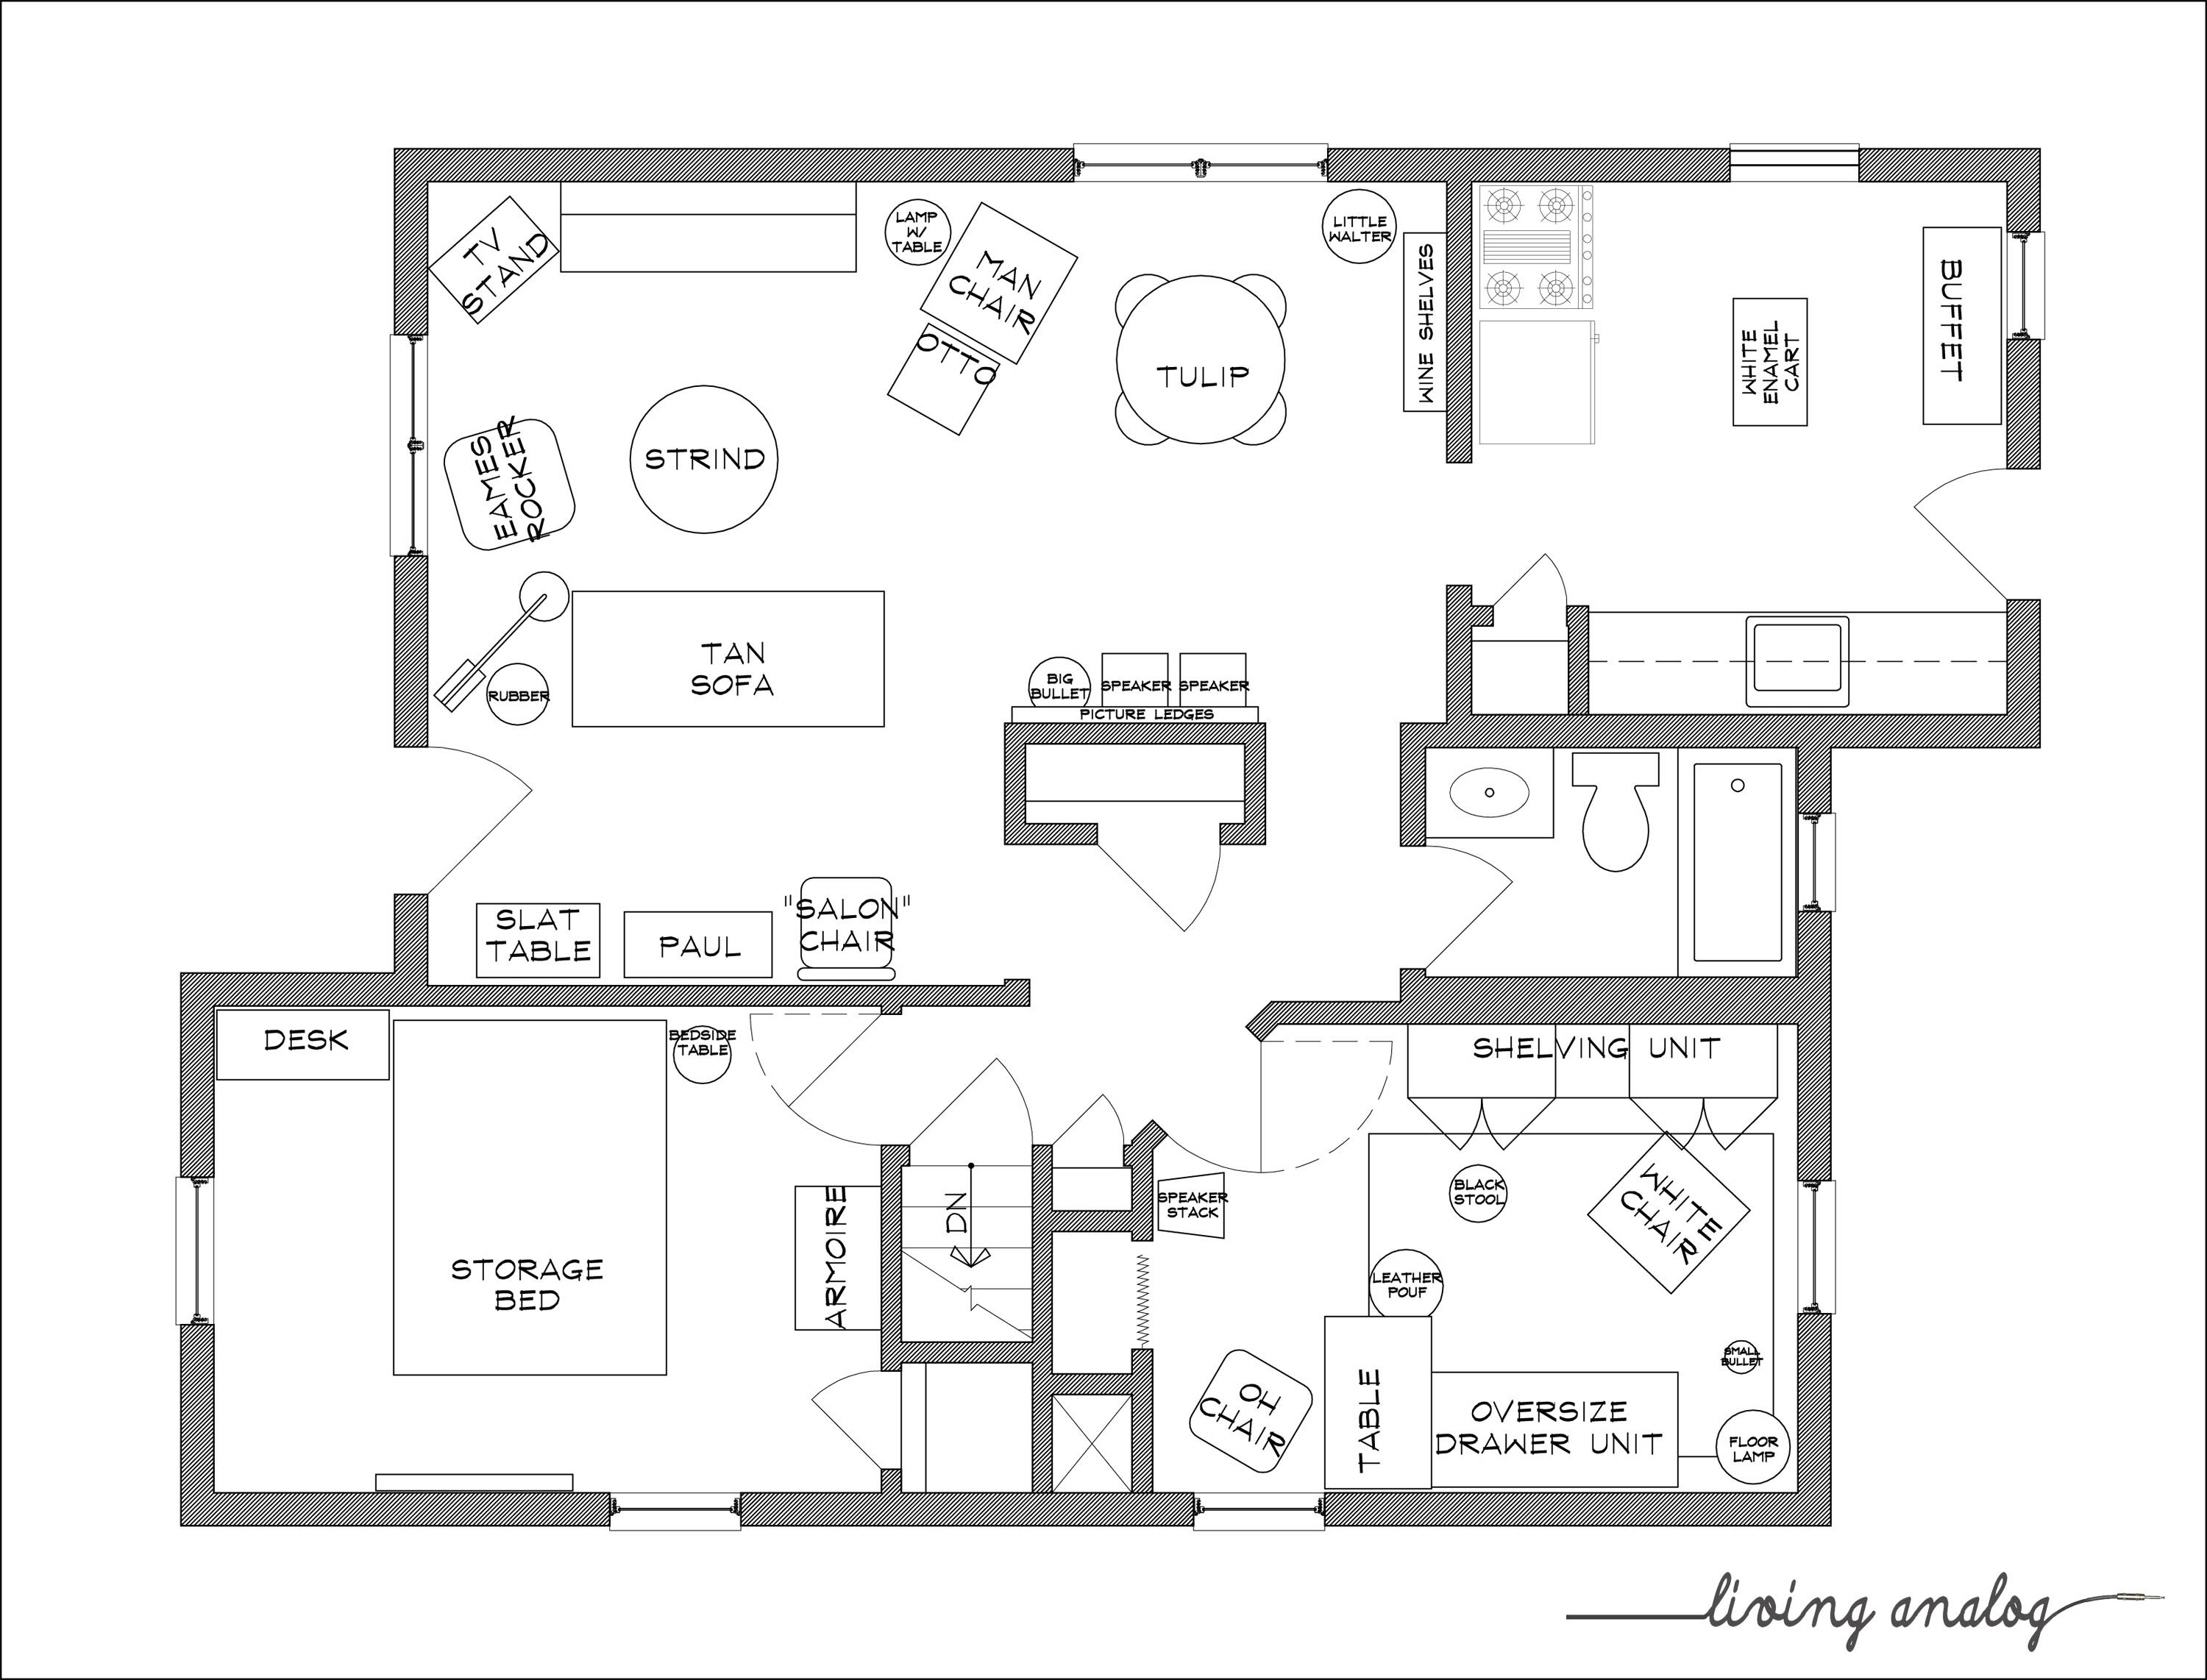 007 Stupendou Free Floor Plan Template Design  Excel Home House SampleFull